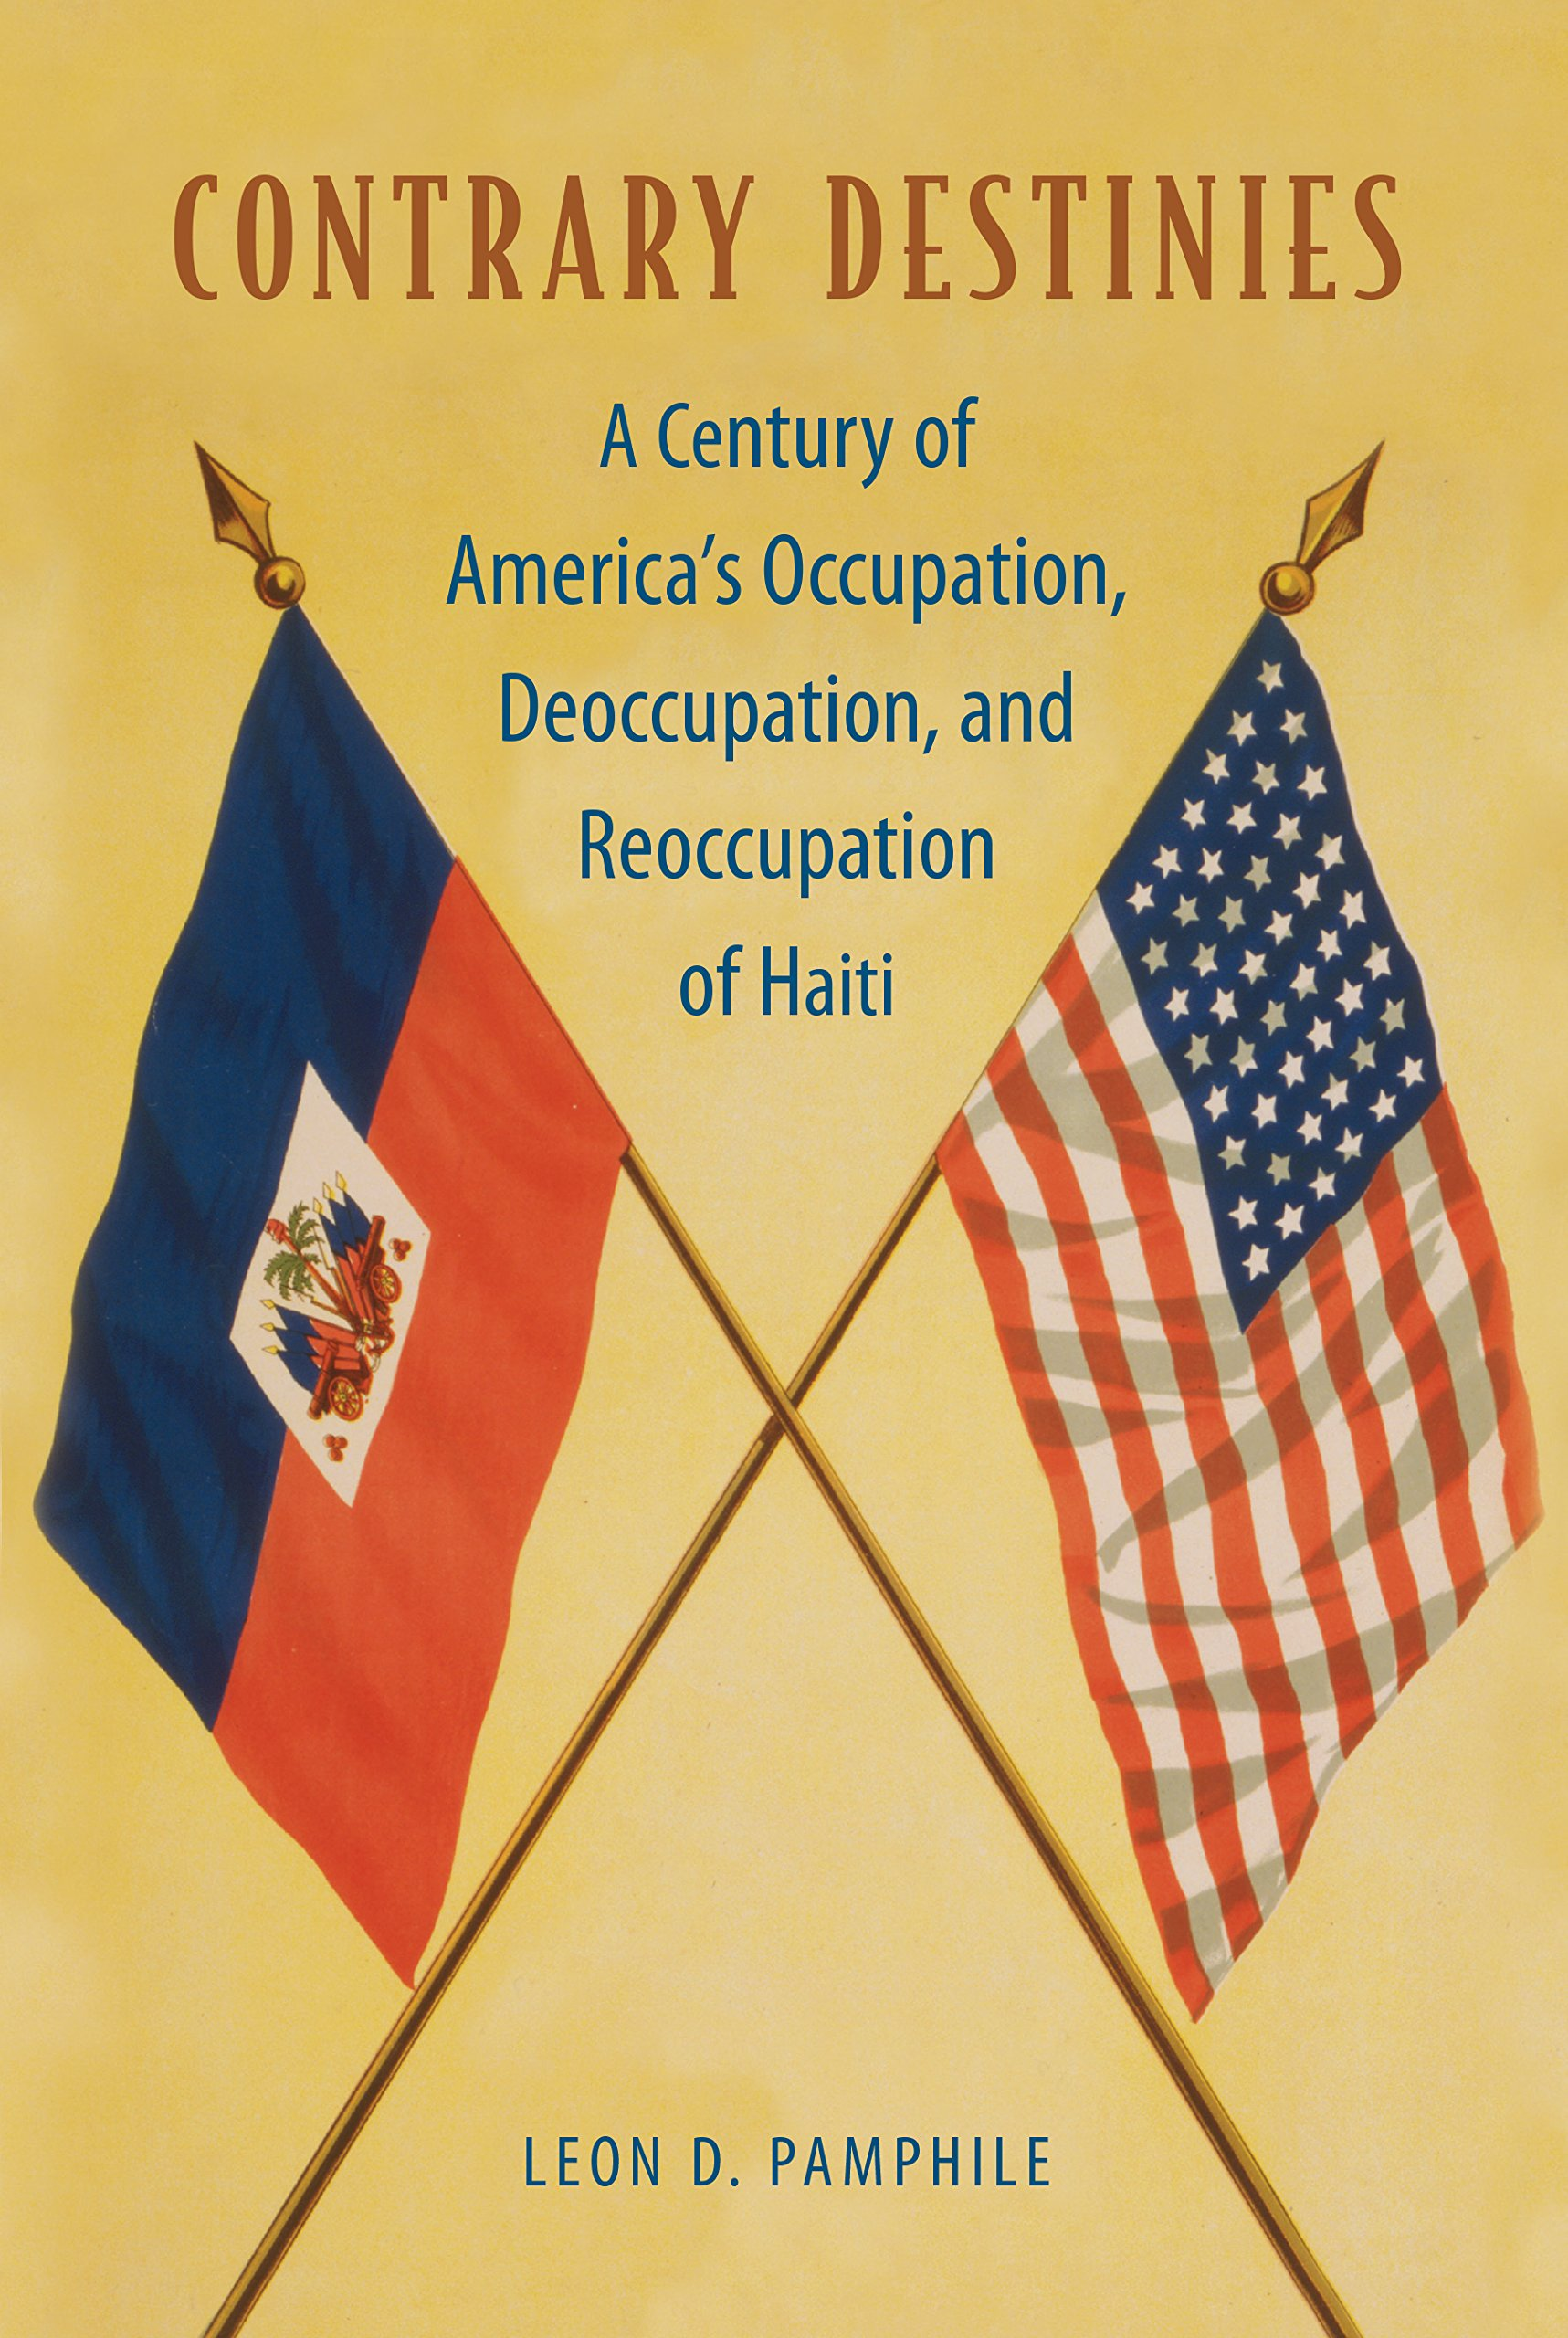 Contrary Destinies: A Century of America's Occupation, Deoccupation, and Reoccupation of Haiti